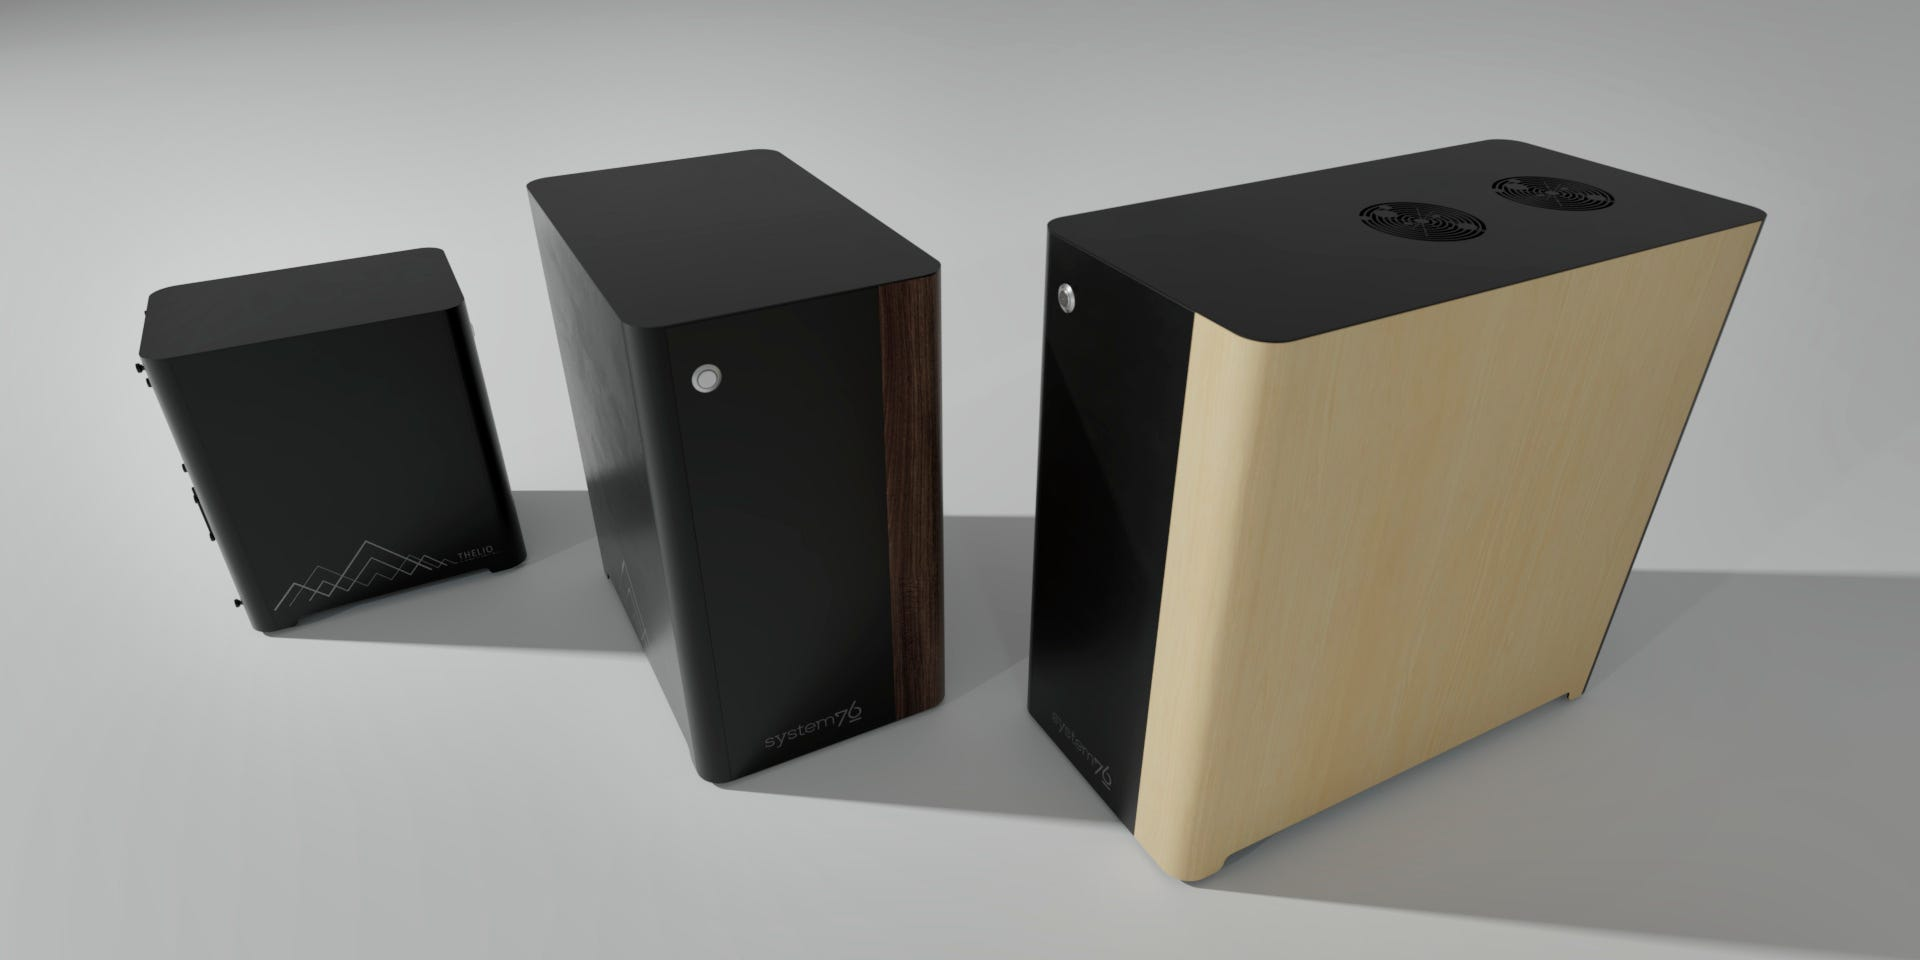 Side by Side Thelio systems